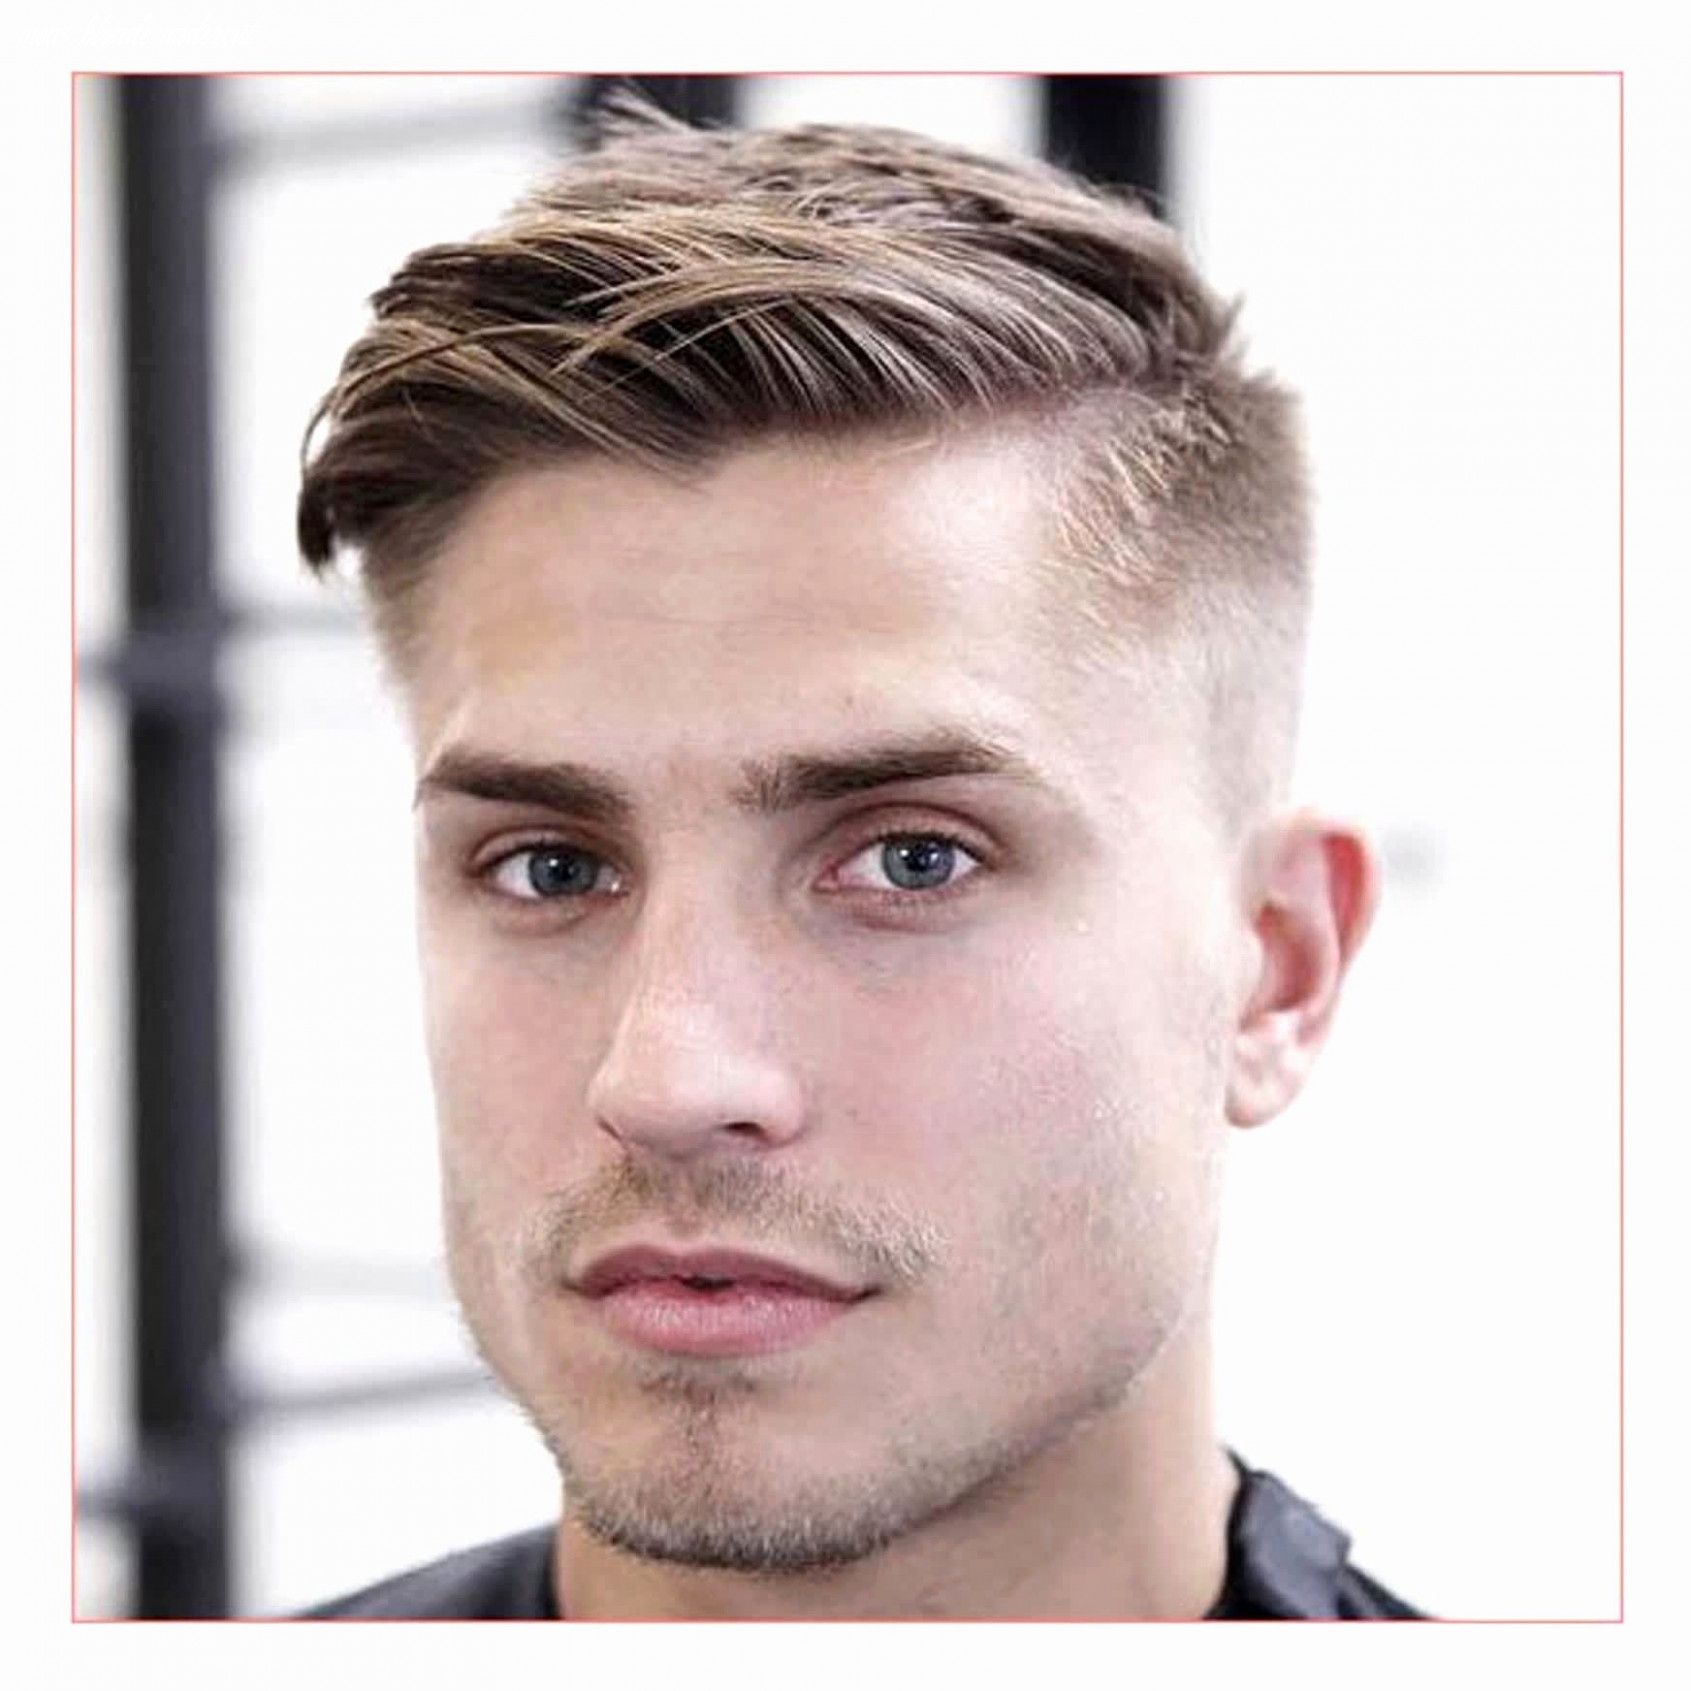 Hairstyles blonde 11 men (with images) | hairstyles for receding